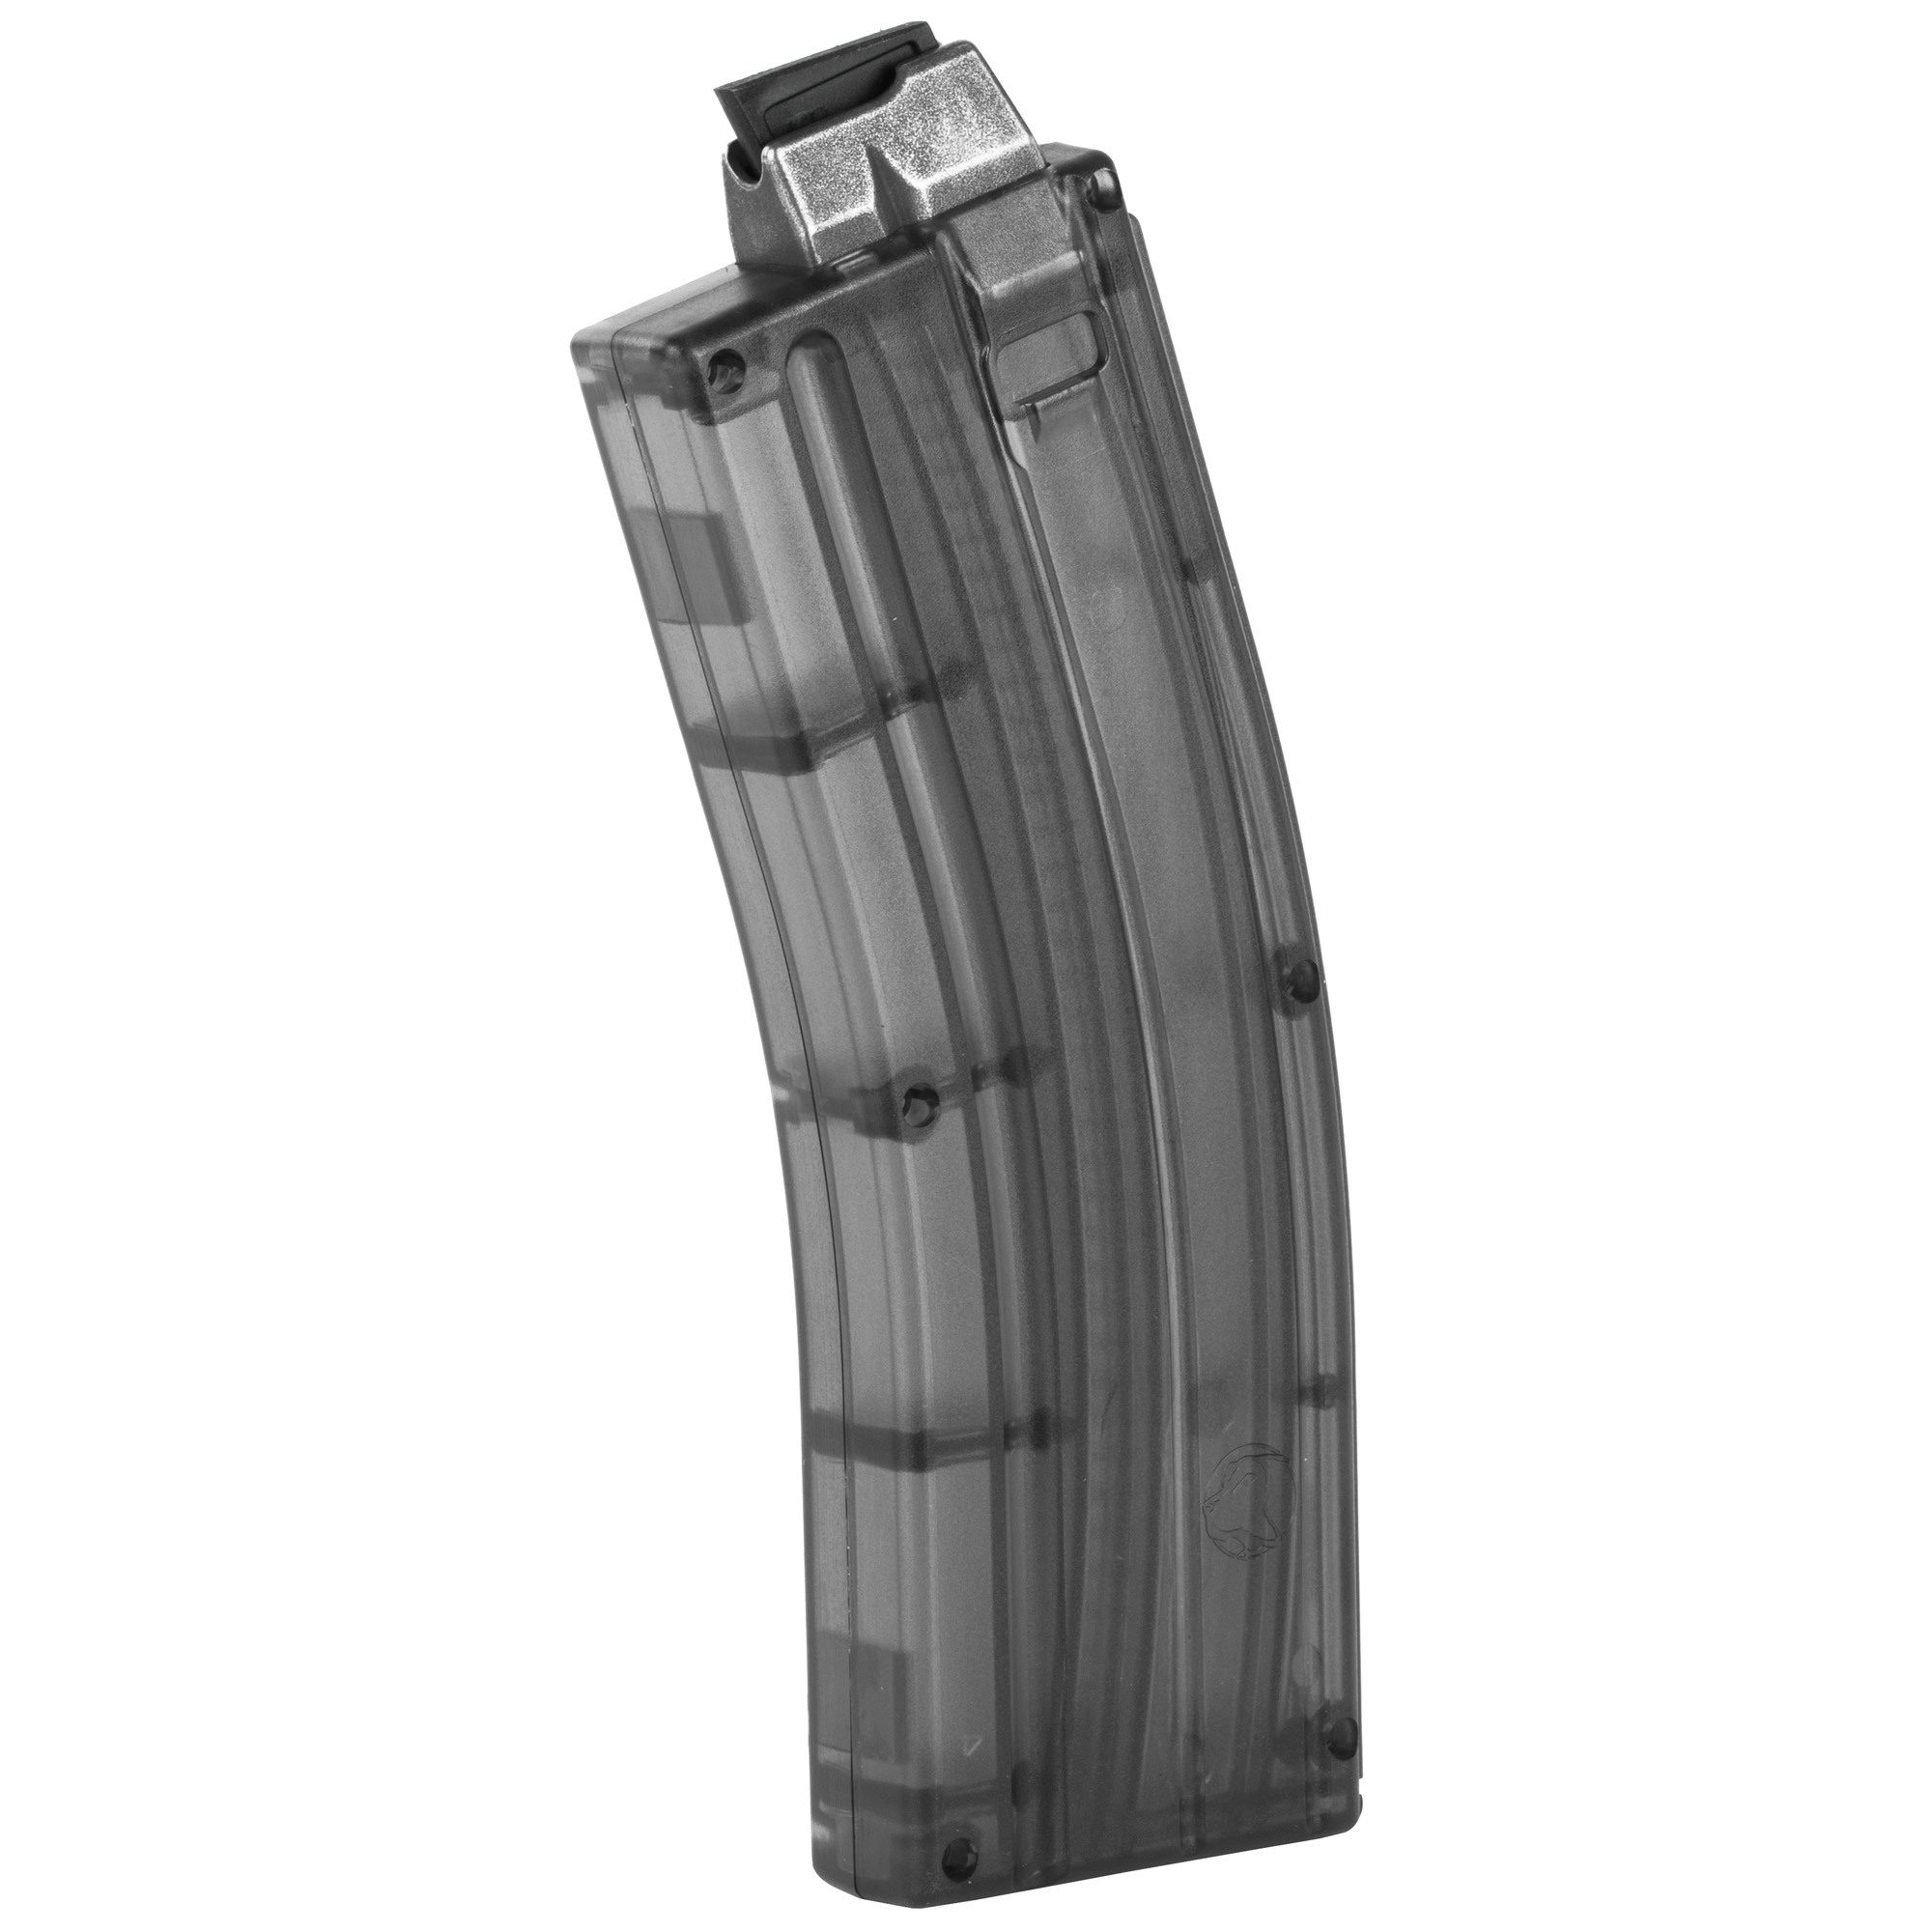 2A Armament is excited to offer these high-quality polymer AR 22LR Magazines. These magazines are tuned to enhance cycling quality in 2A's new AR 22LR products. The 25 round magazines are approximately the same size as standard 30 round AR15 magazine and will fit into standard AR15 mag pouches.